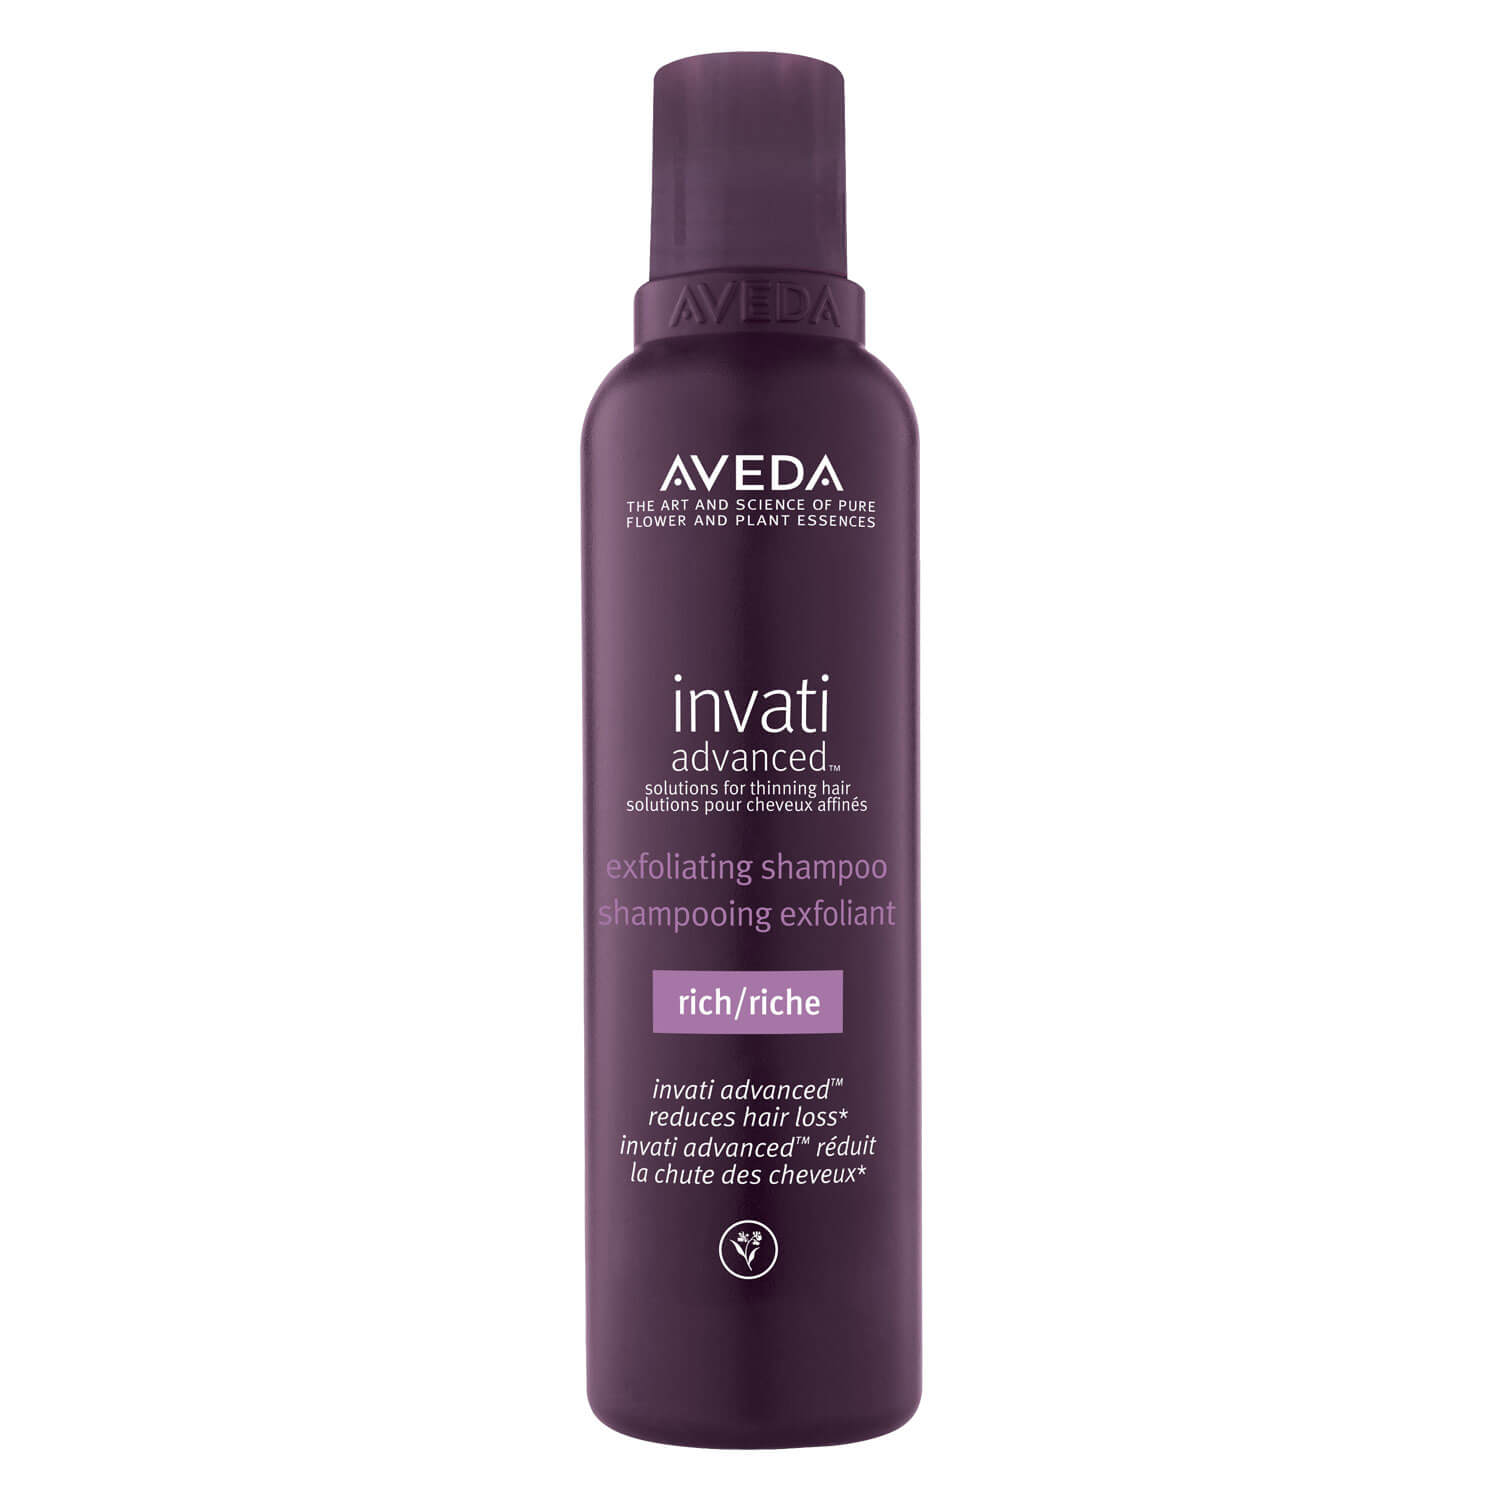 invati advanced - exfoliating shampoo rich